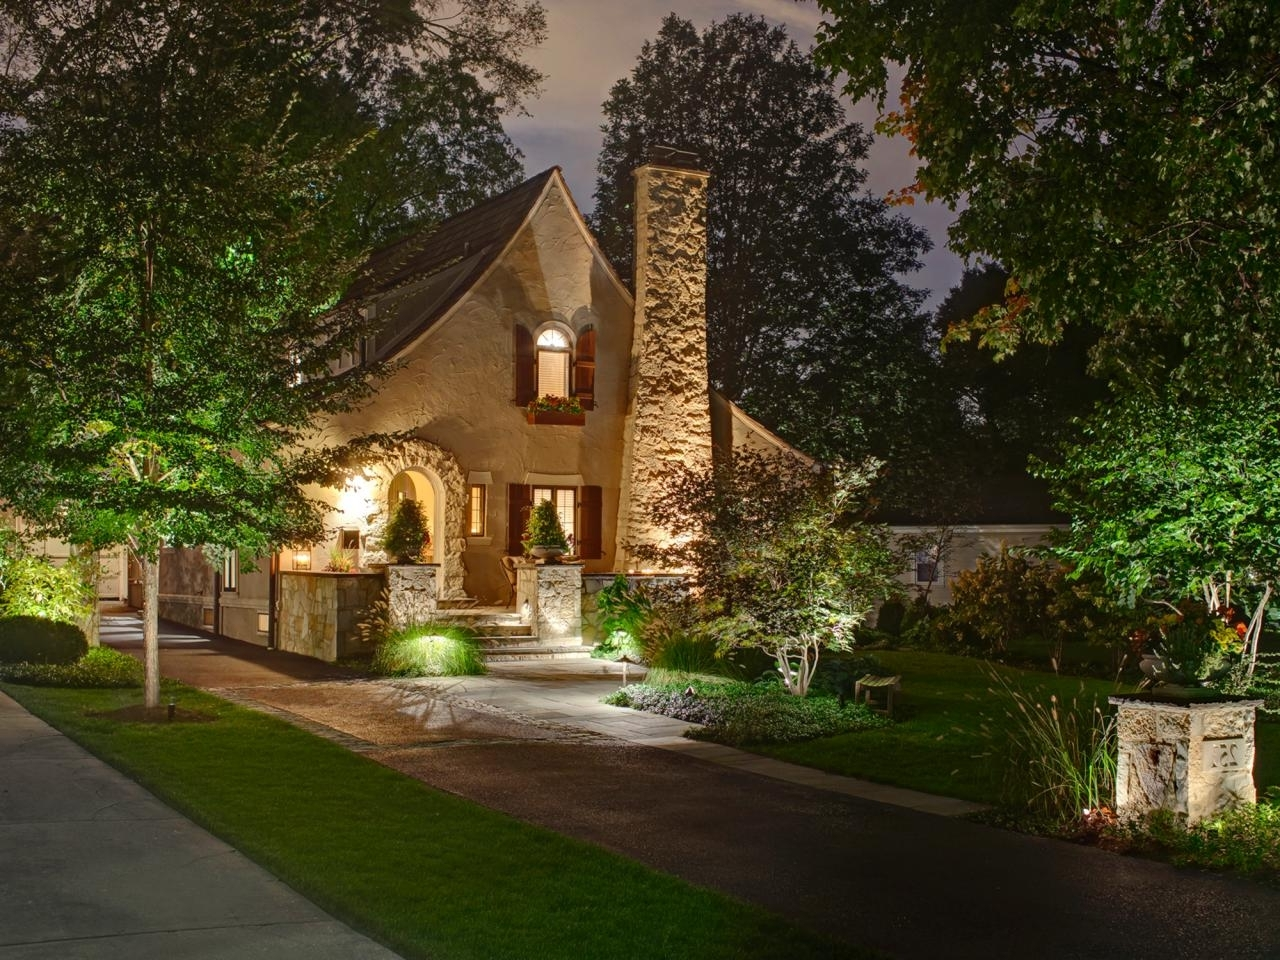 Cottage Outdoor Lighting In Most Up To Date Beautiful Outdoor Lighting Fixtures At A Stone House – Artenzo (View 3 of 20)